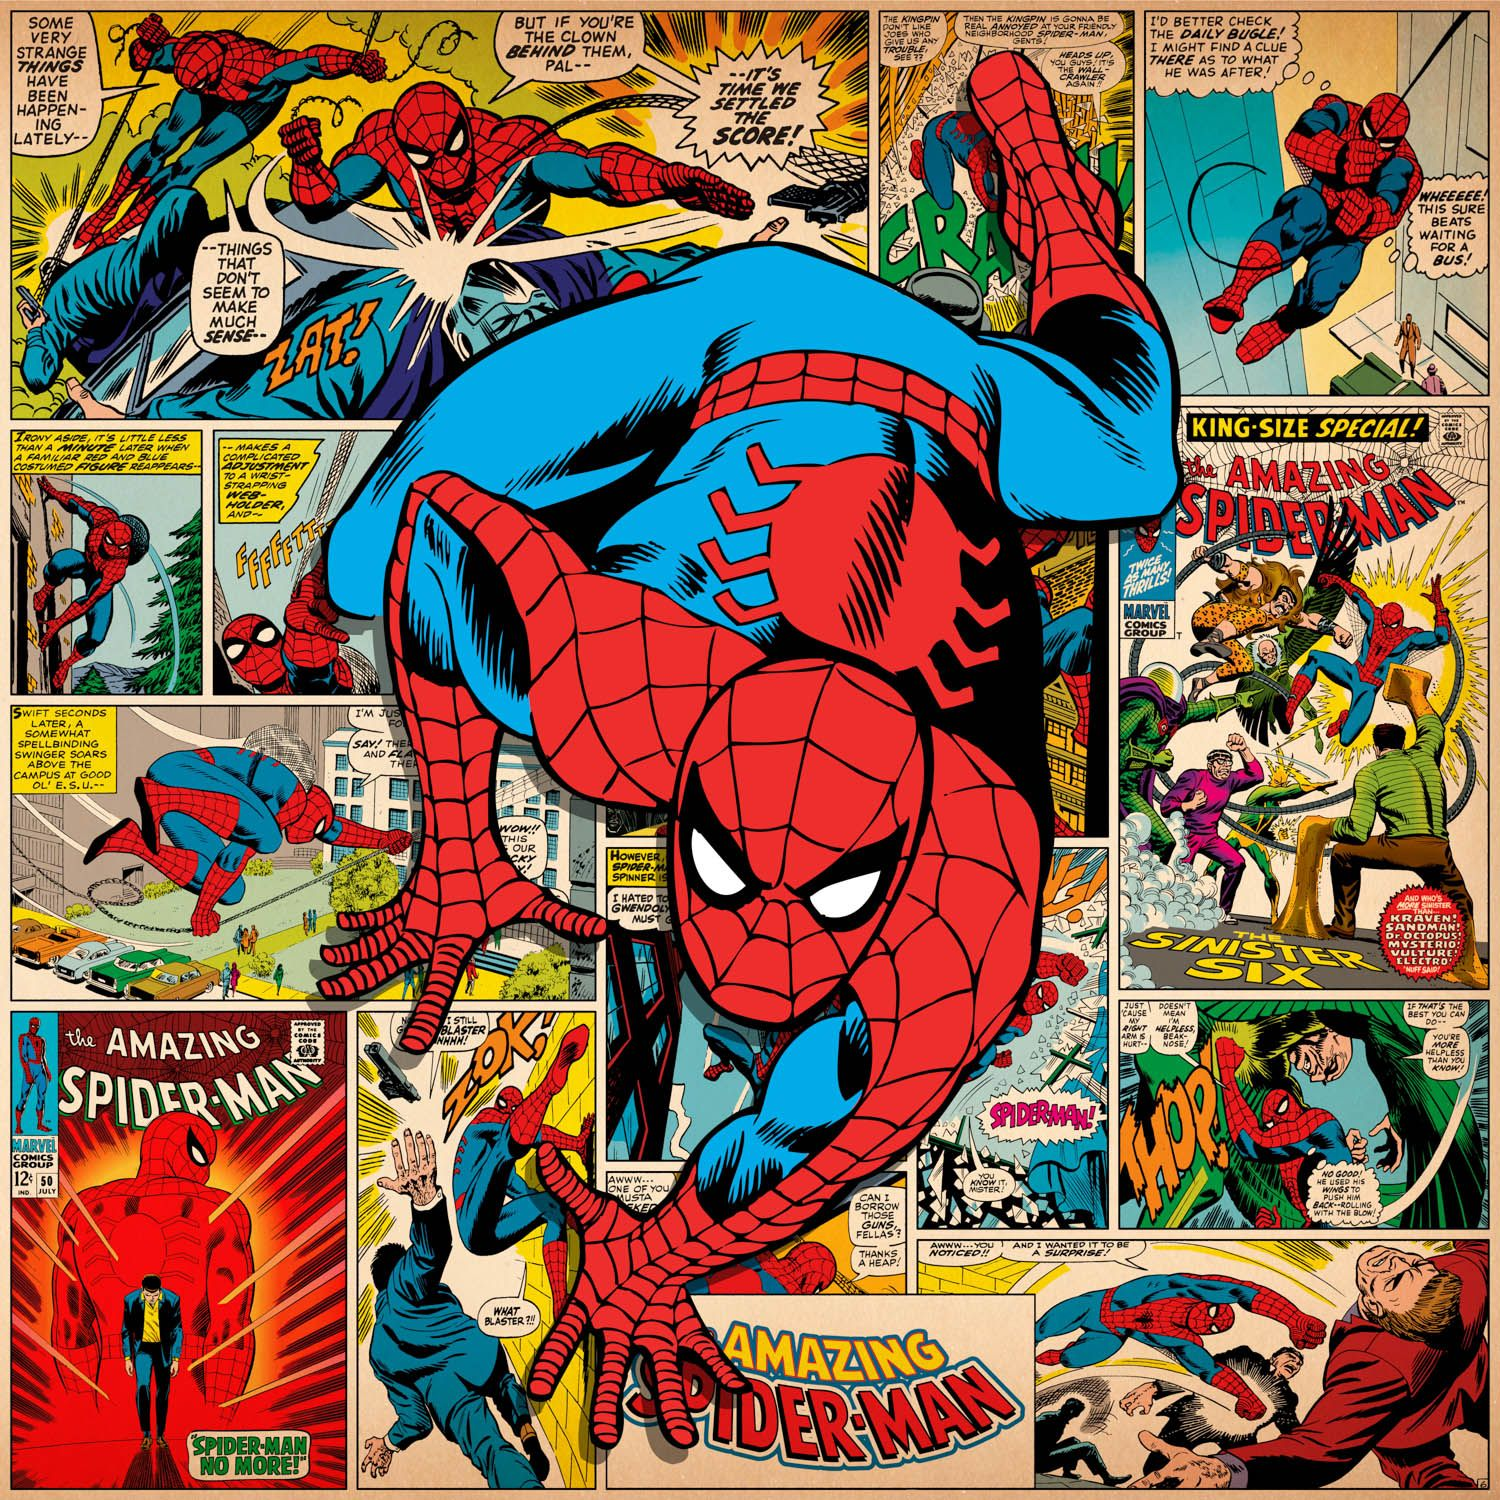 Comic Book Cover Art Prints ~ Marvel comic book spider man on covers panels